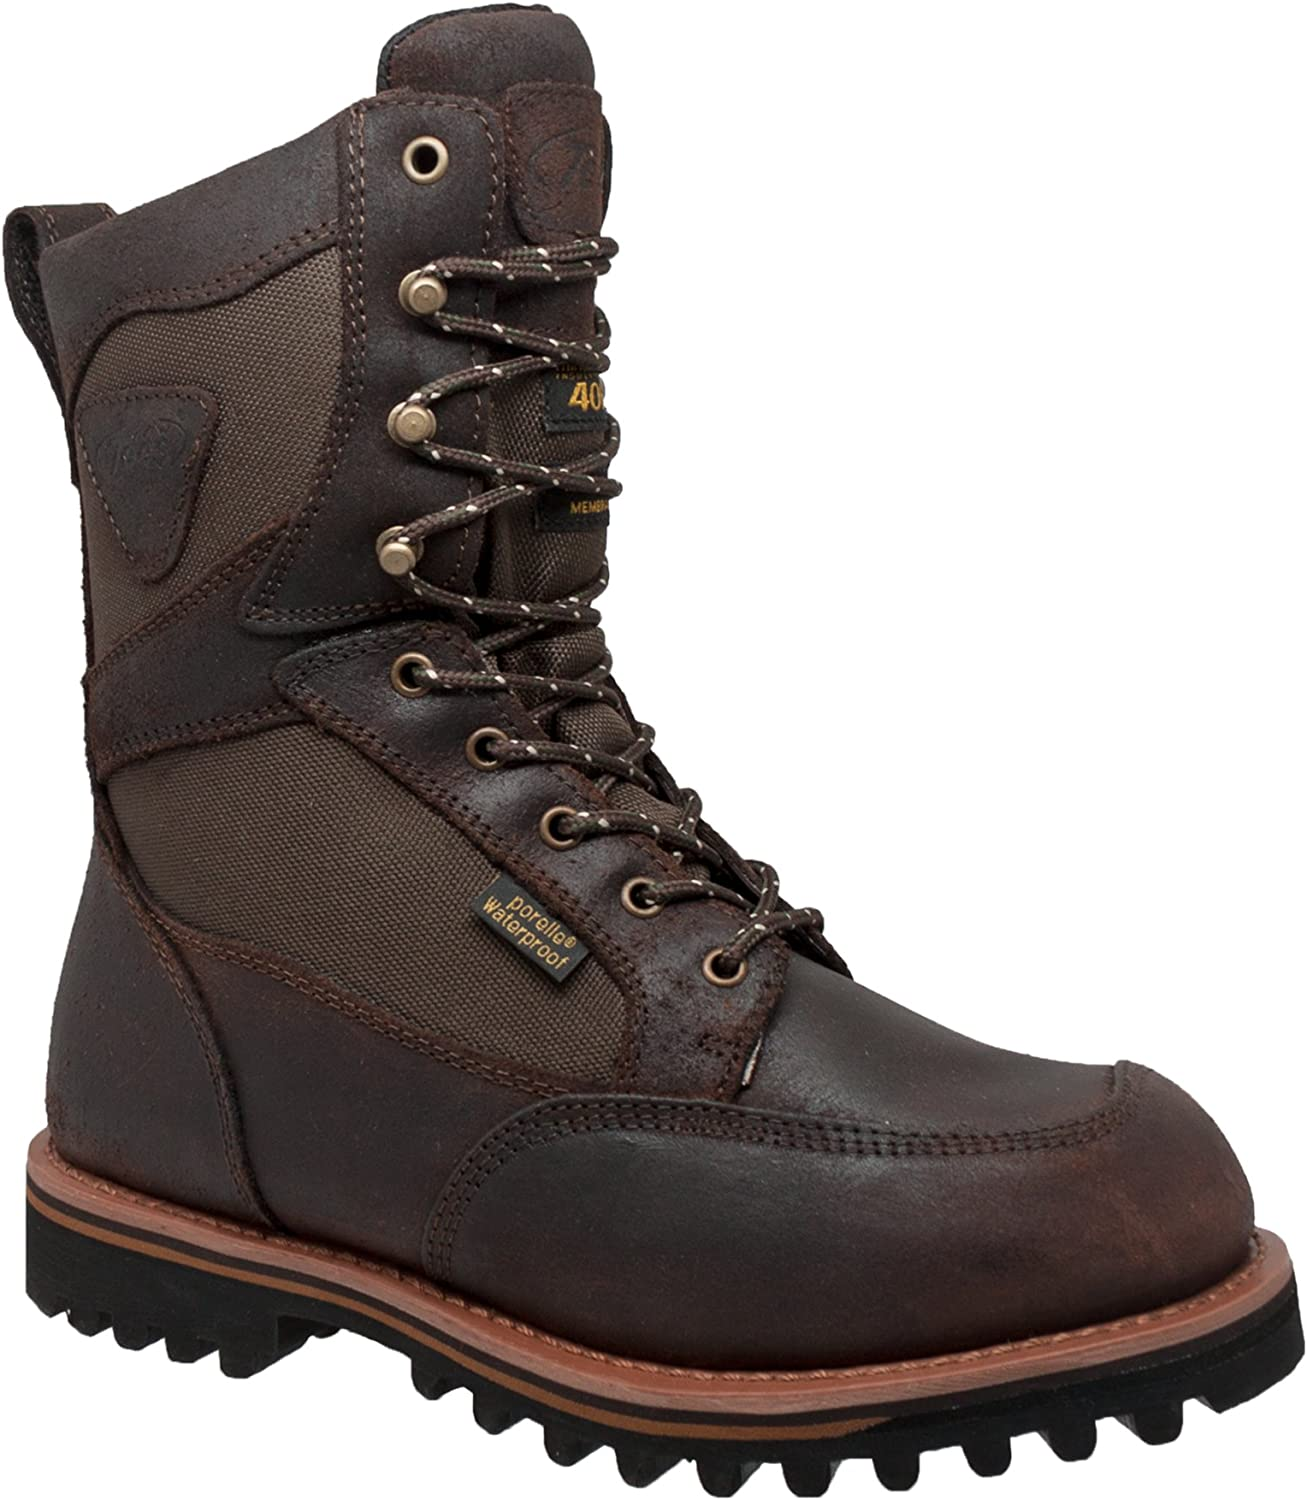 AdTec Mens Dark Brown 11in Cordura Insulated Leather Hiking Boots 10.5 W